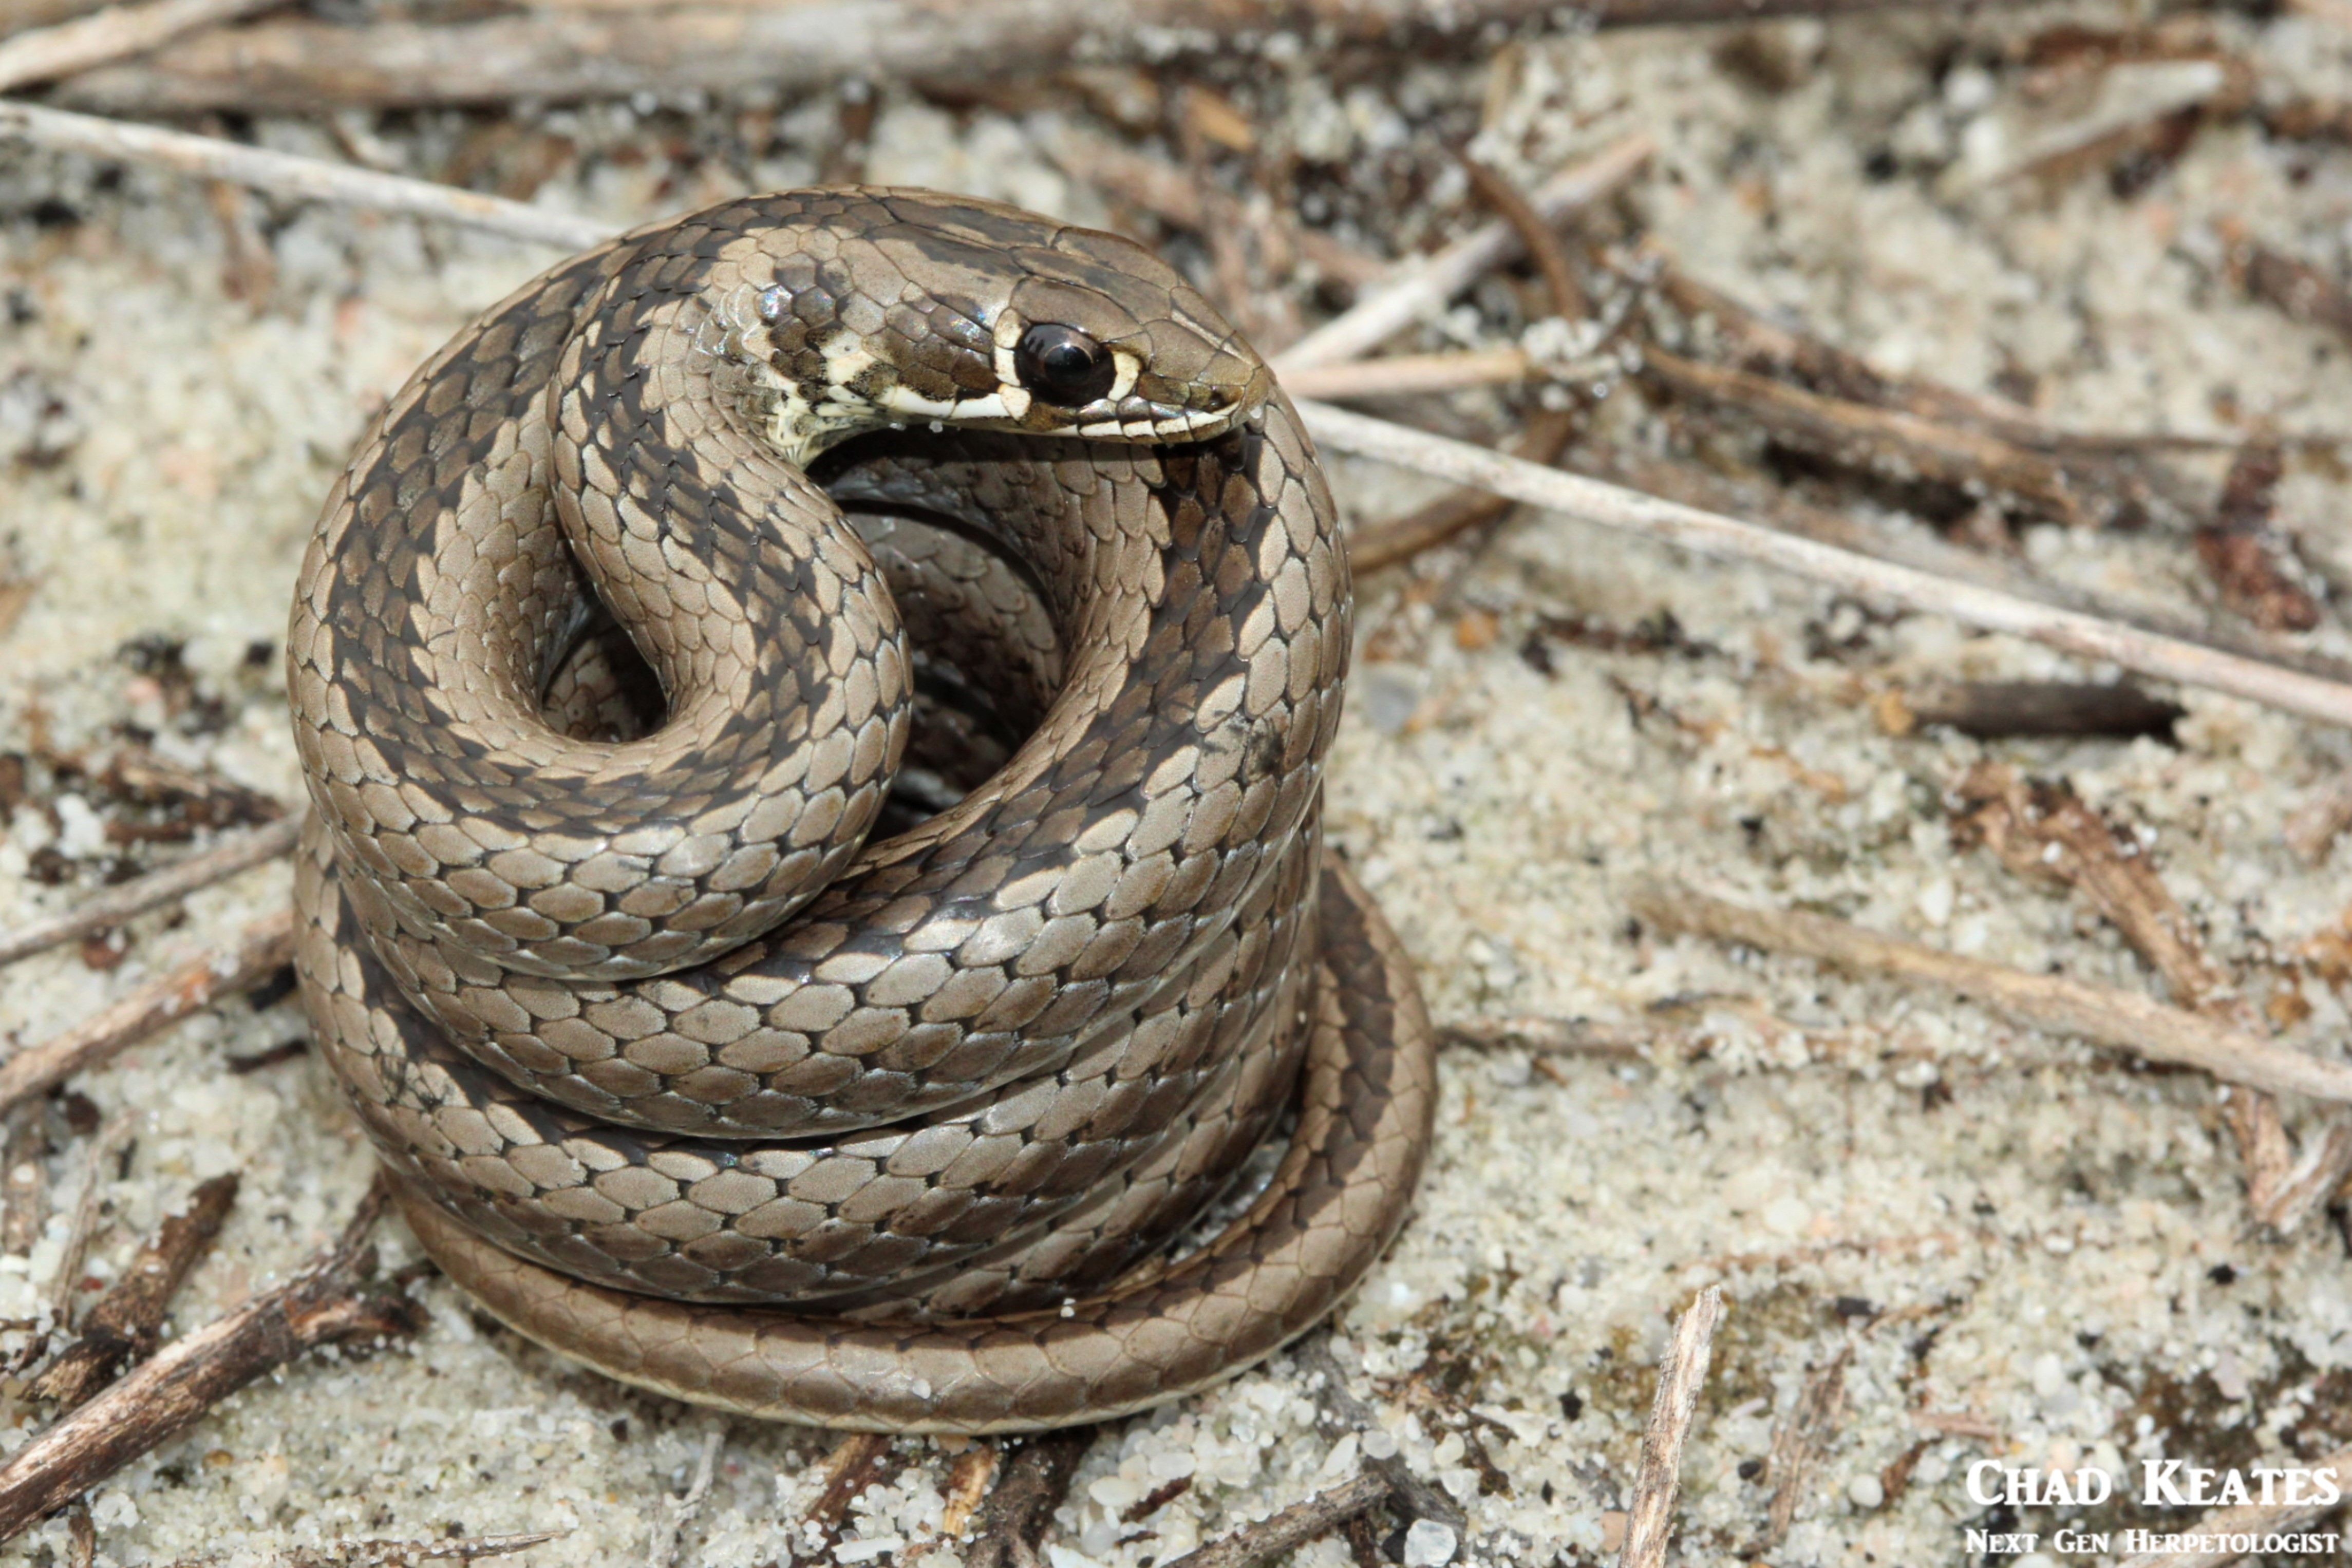 Psammophis_crucifer_Cross-marked_Whip_Snake_Chad_Keates